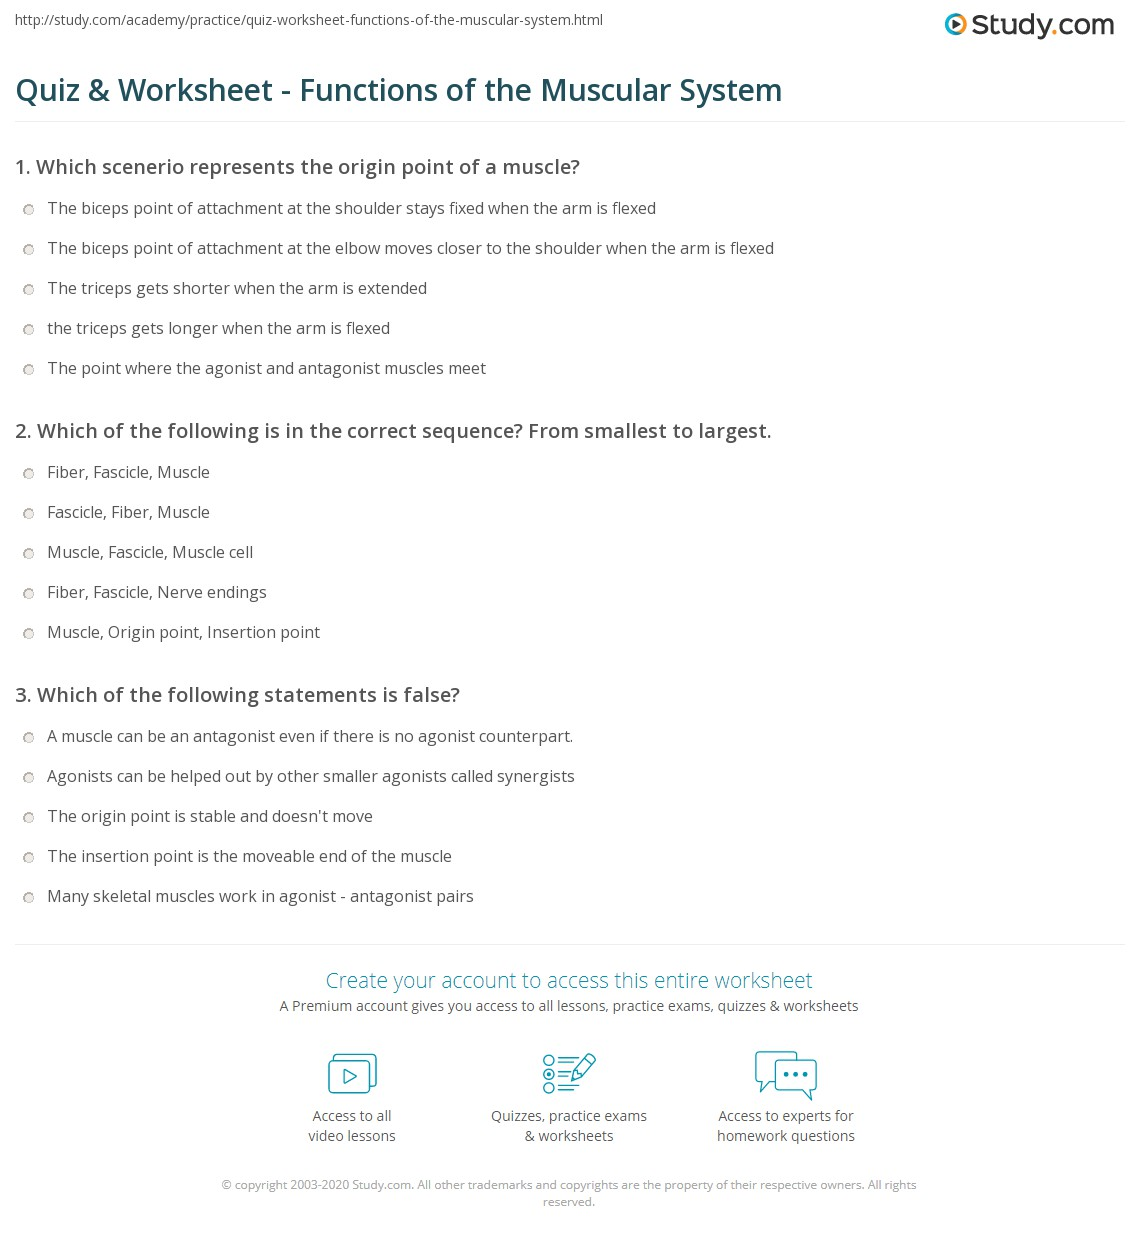 Quiz Worksheet Functions of the Muscular System – The Muscular System Worksheet